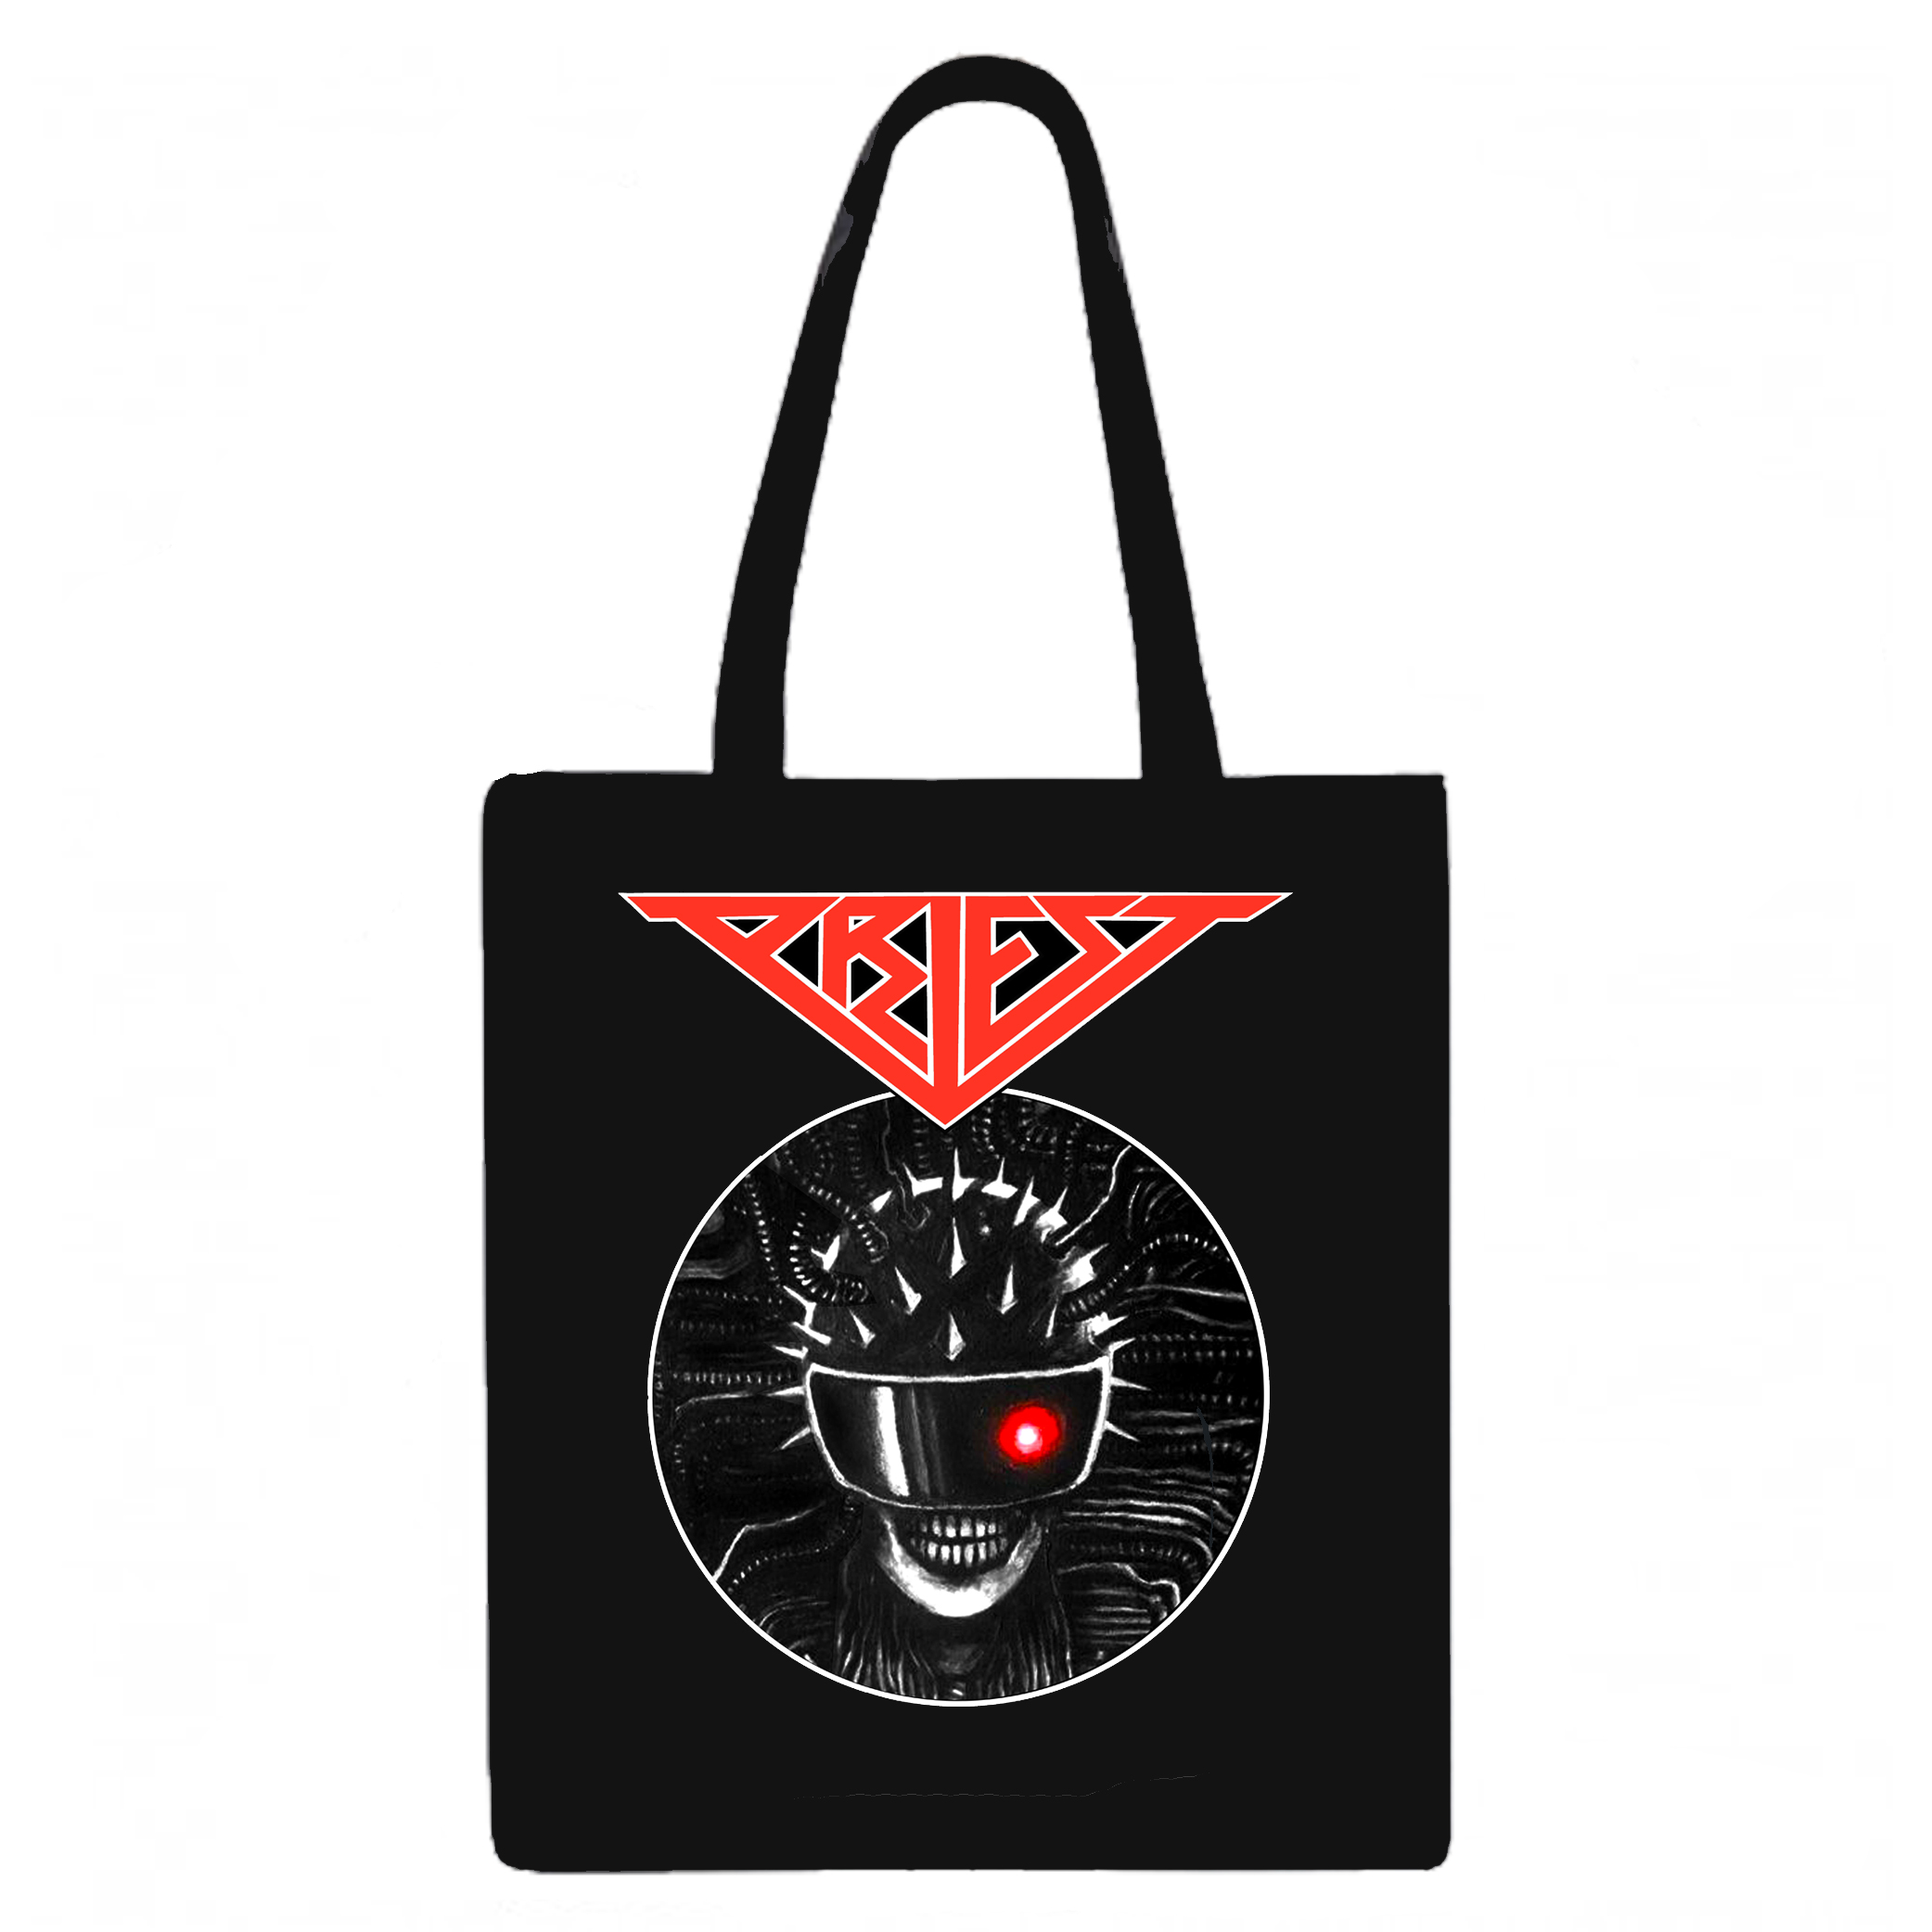 DR tote